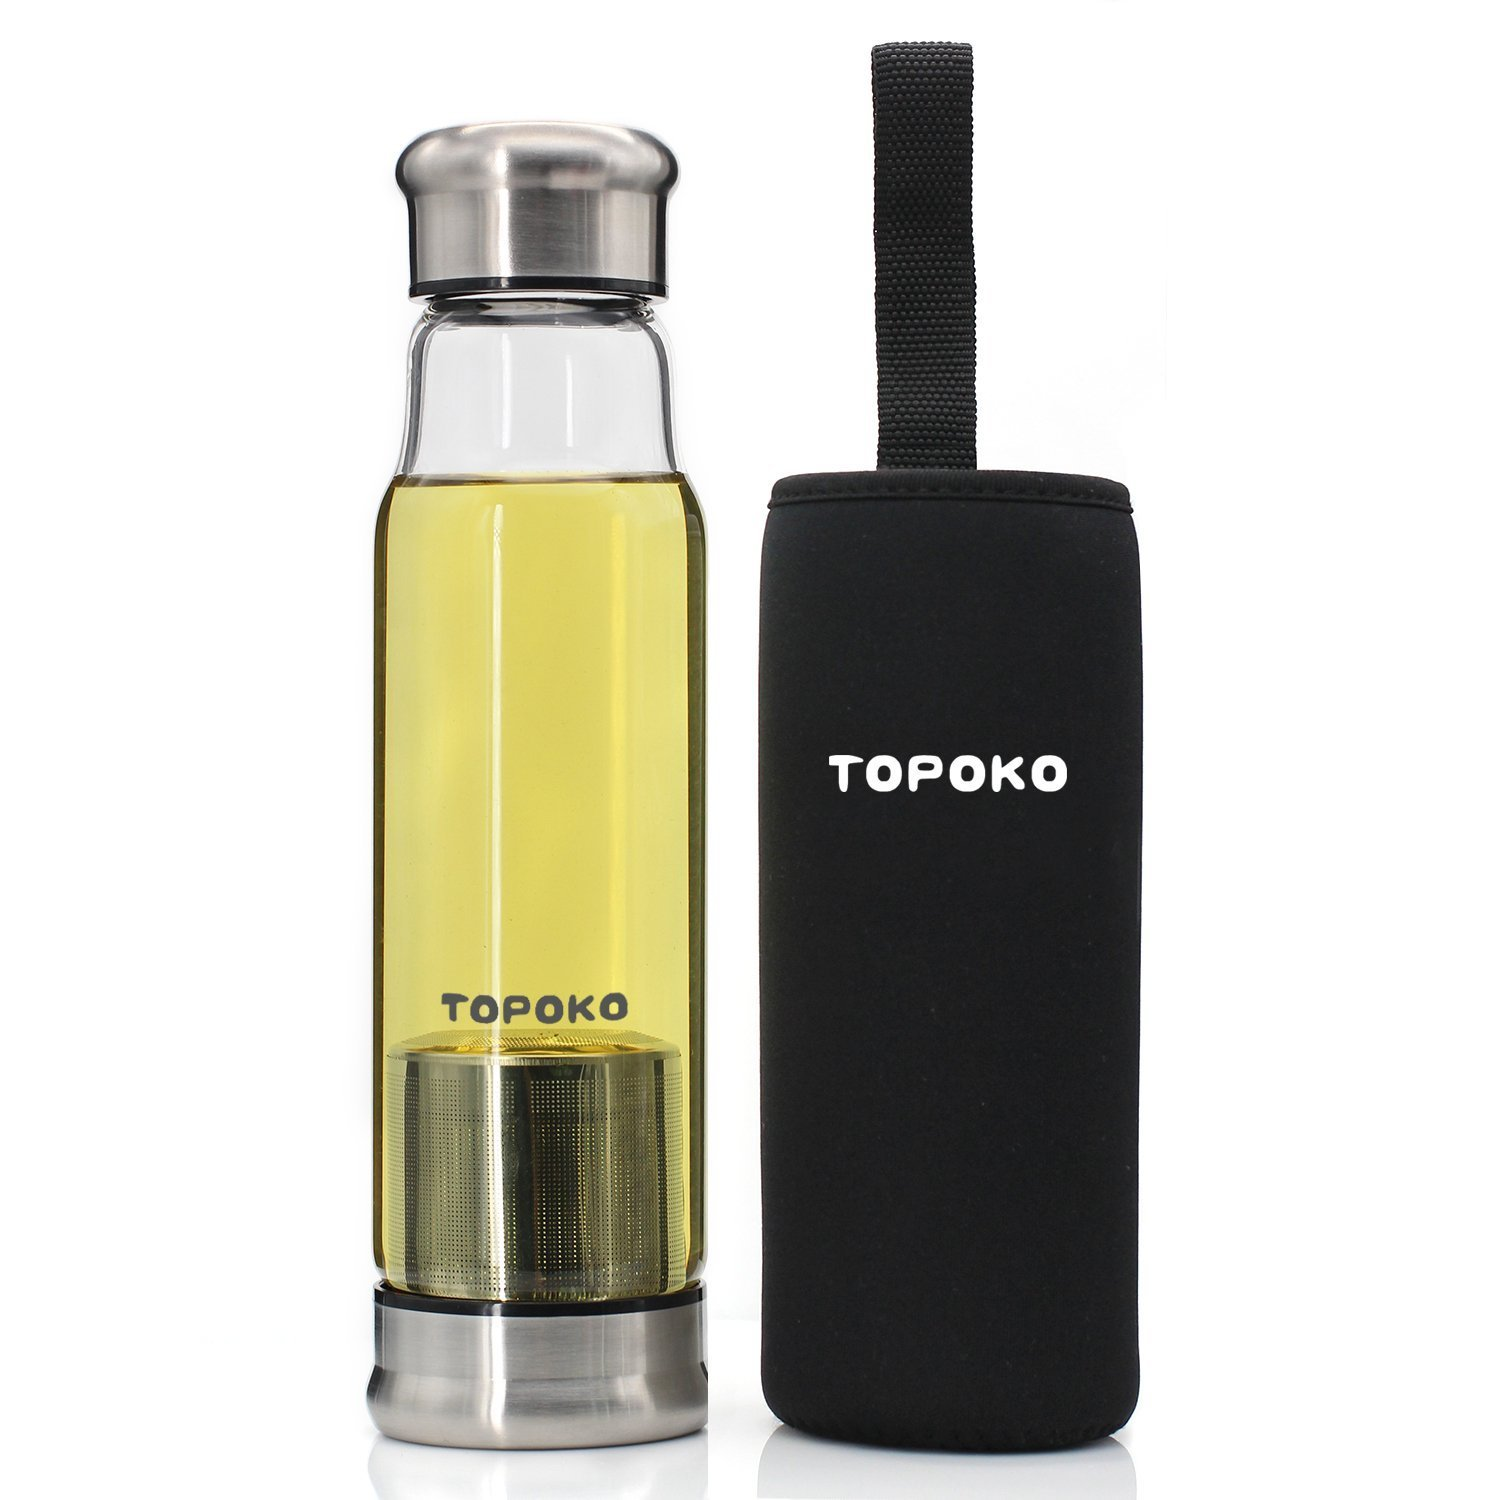 TOPOKO 18.5 Ounce Top Level Quality Stylish Environmental Borosilicate Infuser Glass Water Bottle with Silver Nylon Sleeve (Black) by TOPOKO